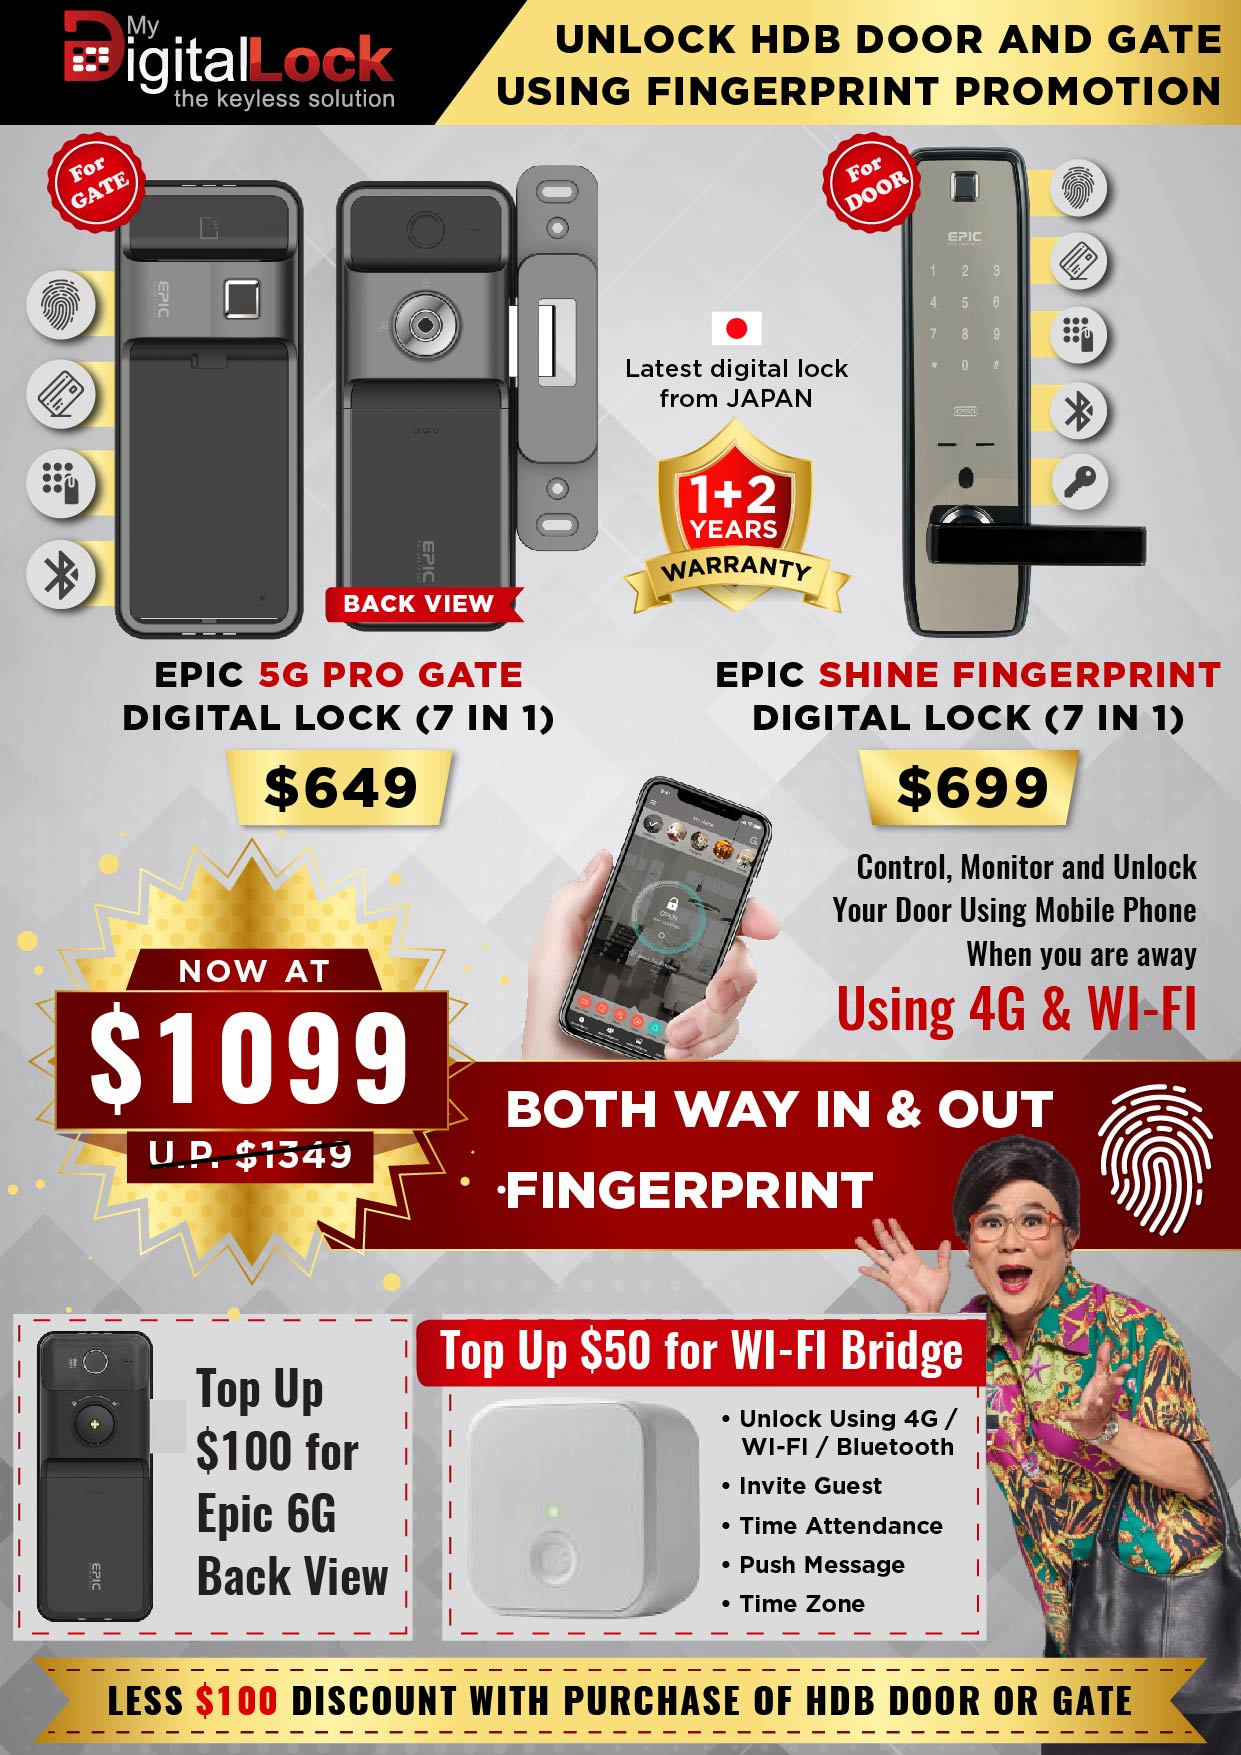 EPIC 5G PRO Gate and Shine Fingerprint Digital Lock Promotion